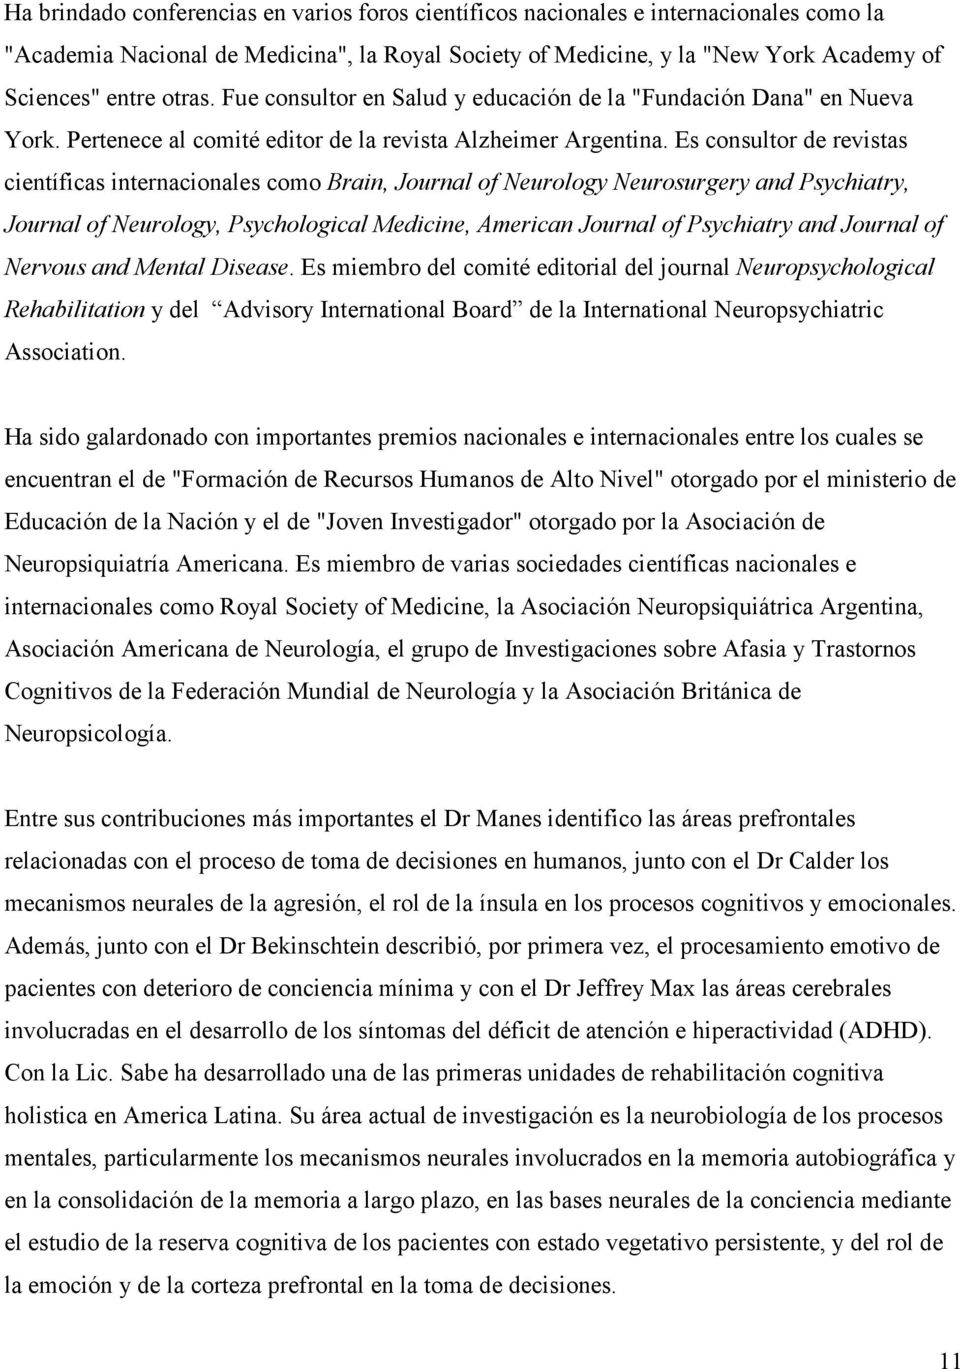 Es consultor de revistas científicas internacionales como Brain, Journal of Neurology Neurosurgery and Psychiatry, Journal of Neurology, Psychological Medicine, American Journal of Psychiatry and